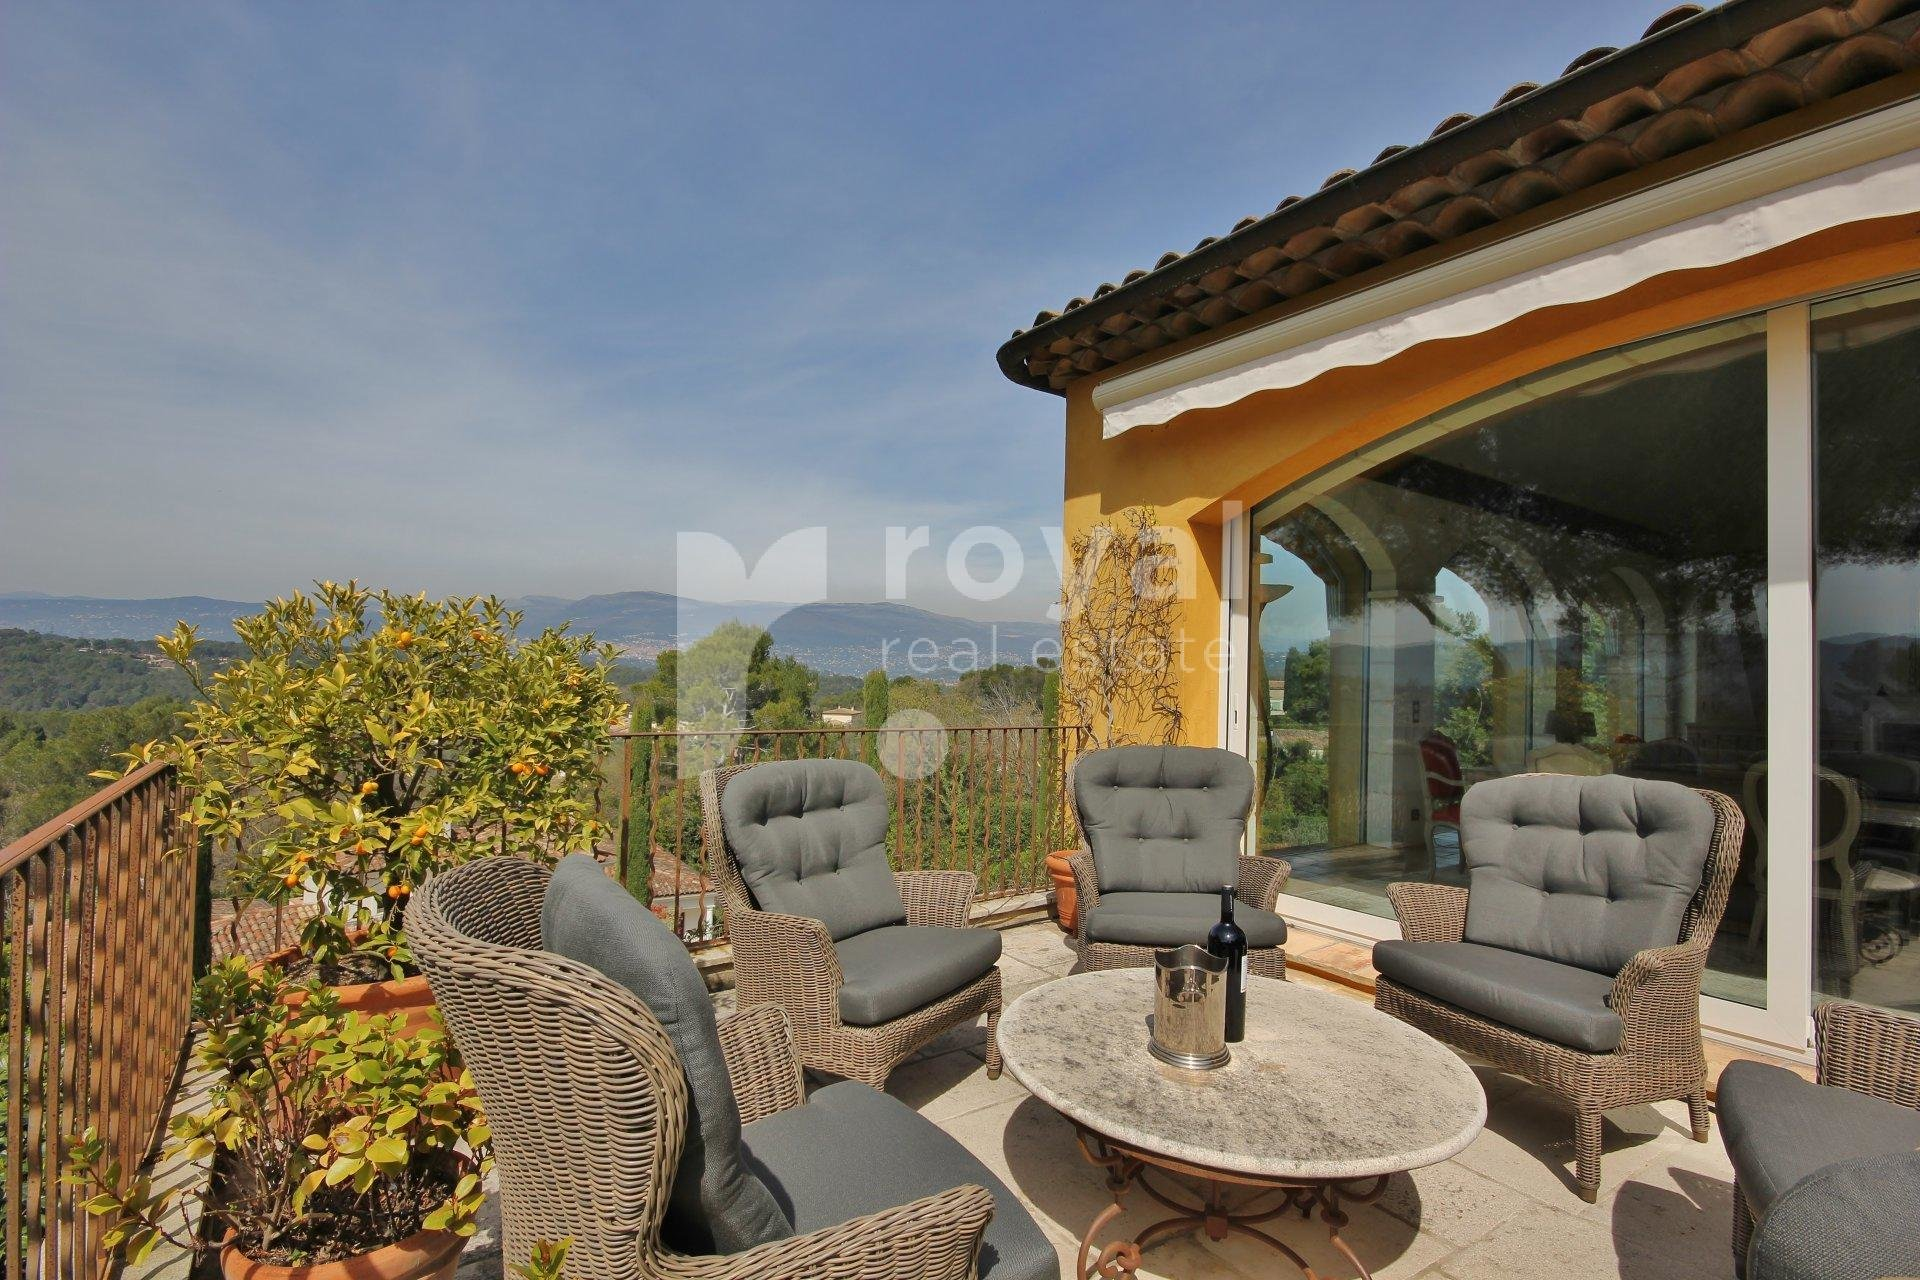 FOR SALE VILLA - MOUGINS GOLF